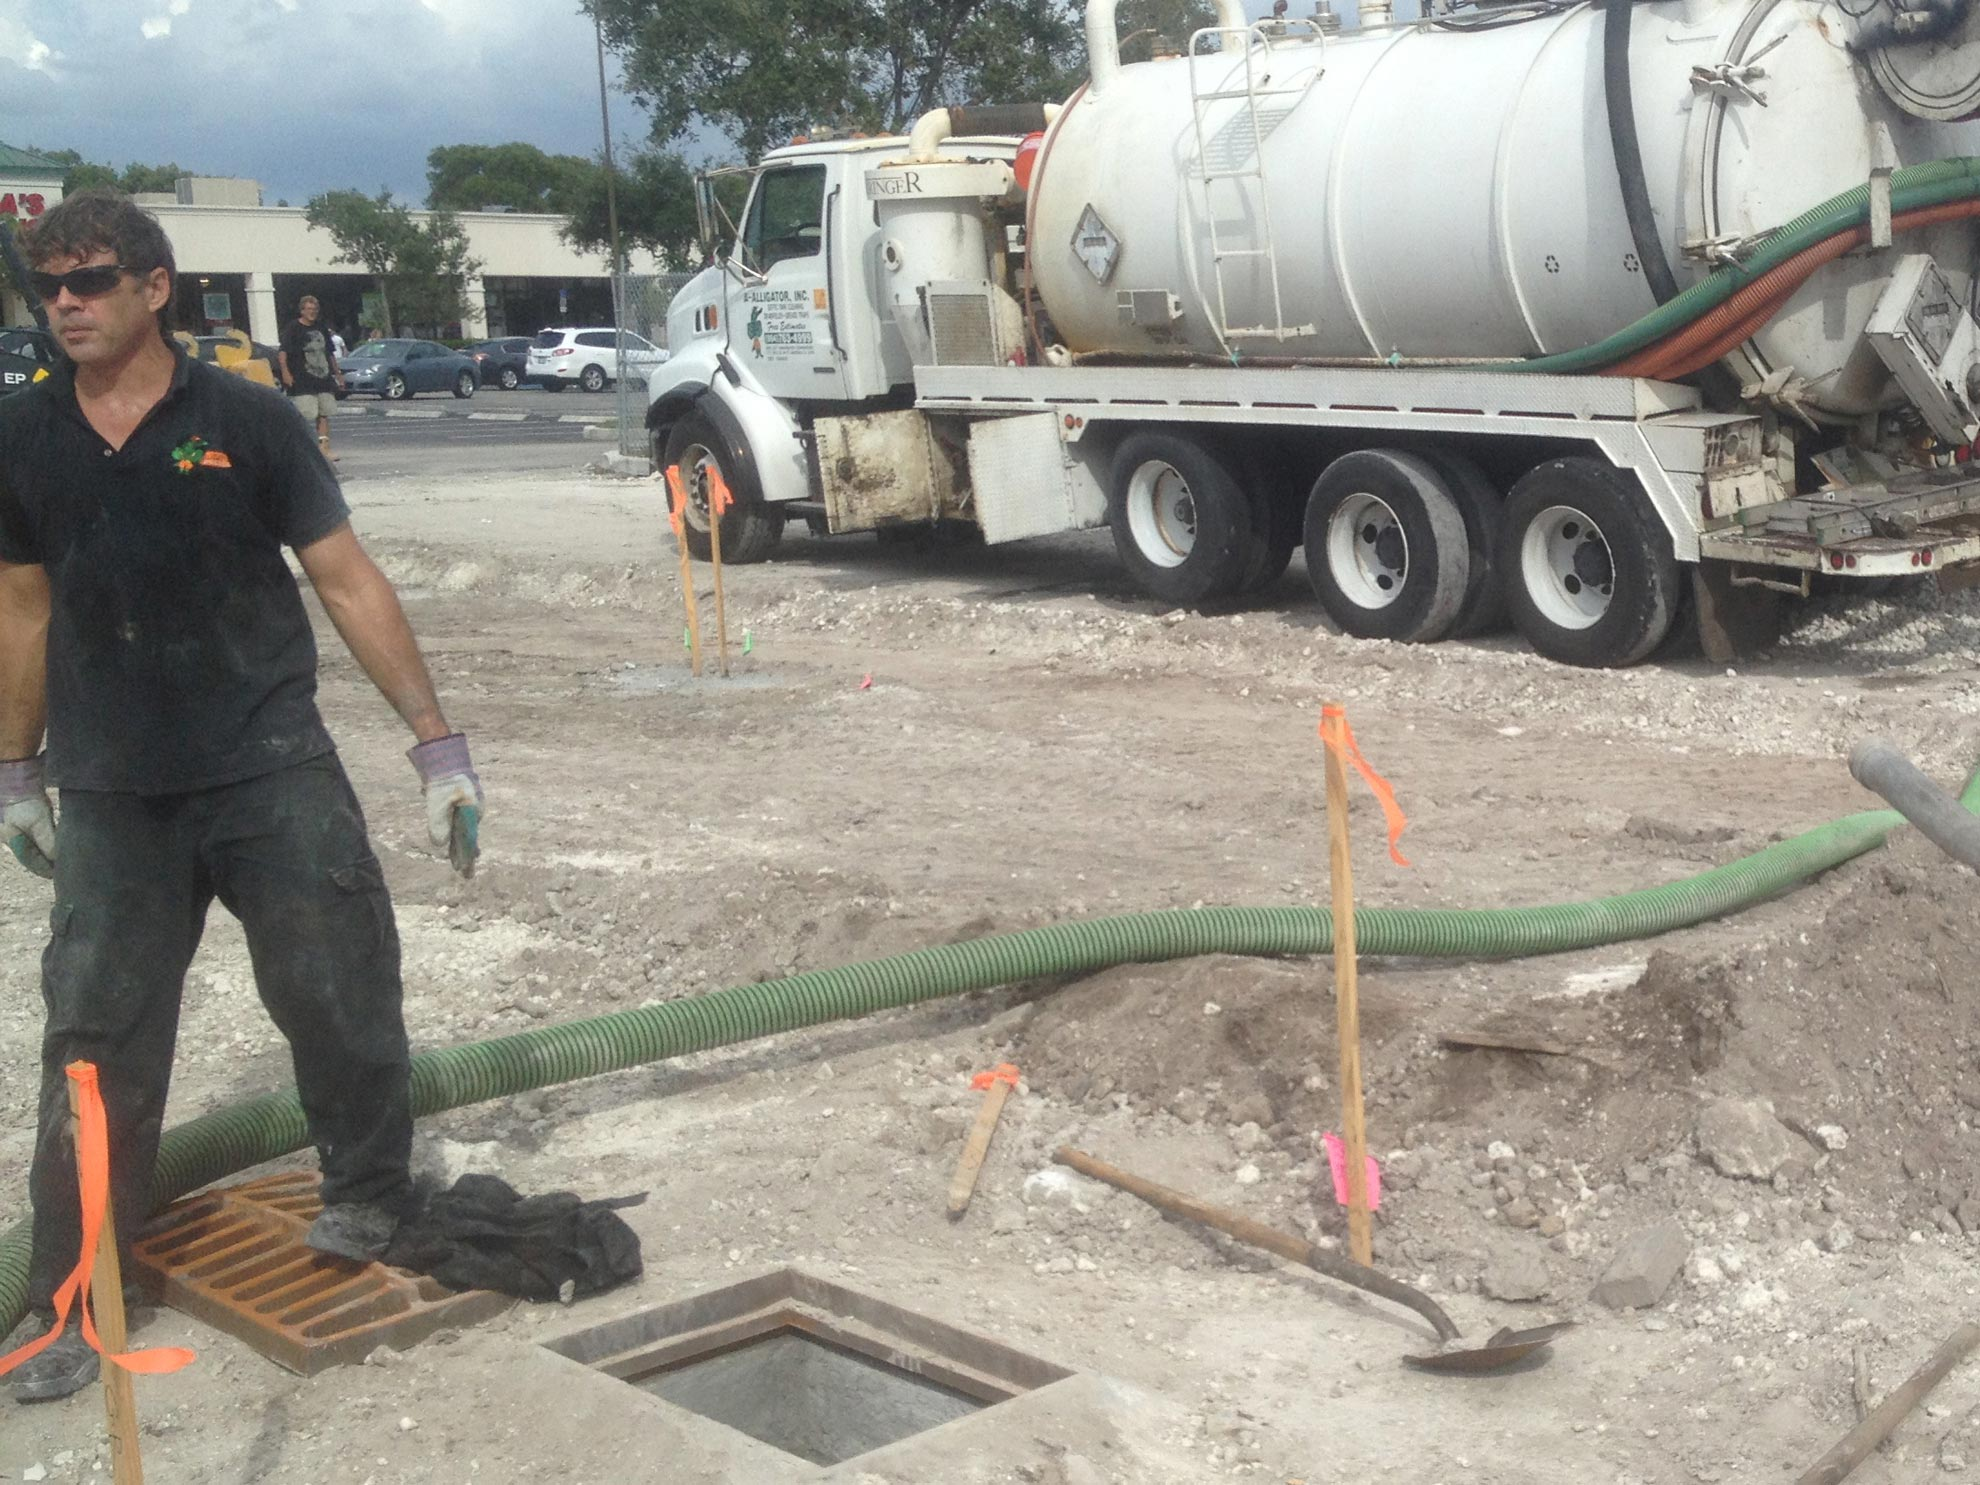 South Florida Storm Drain Cleaning Parking Lot Drainage